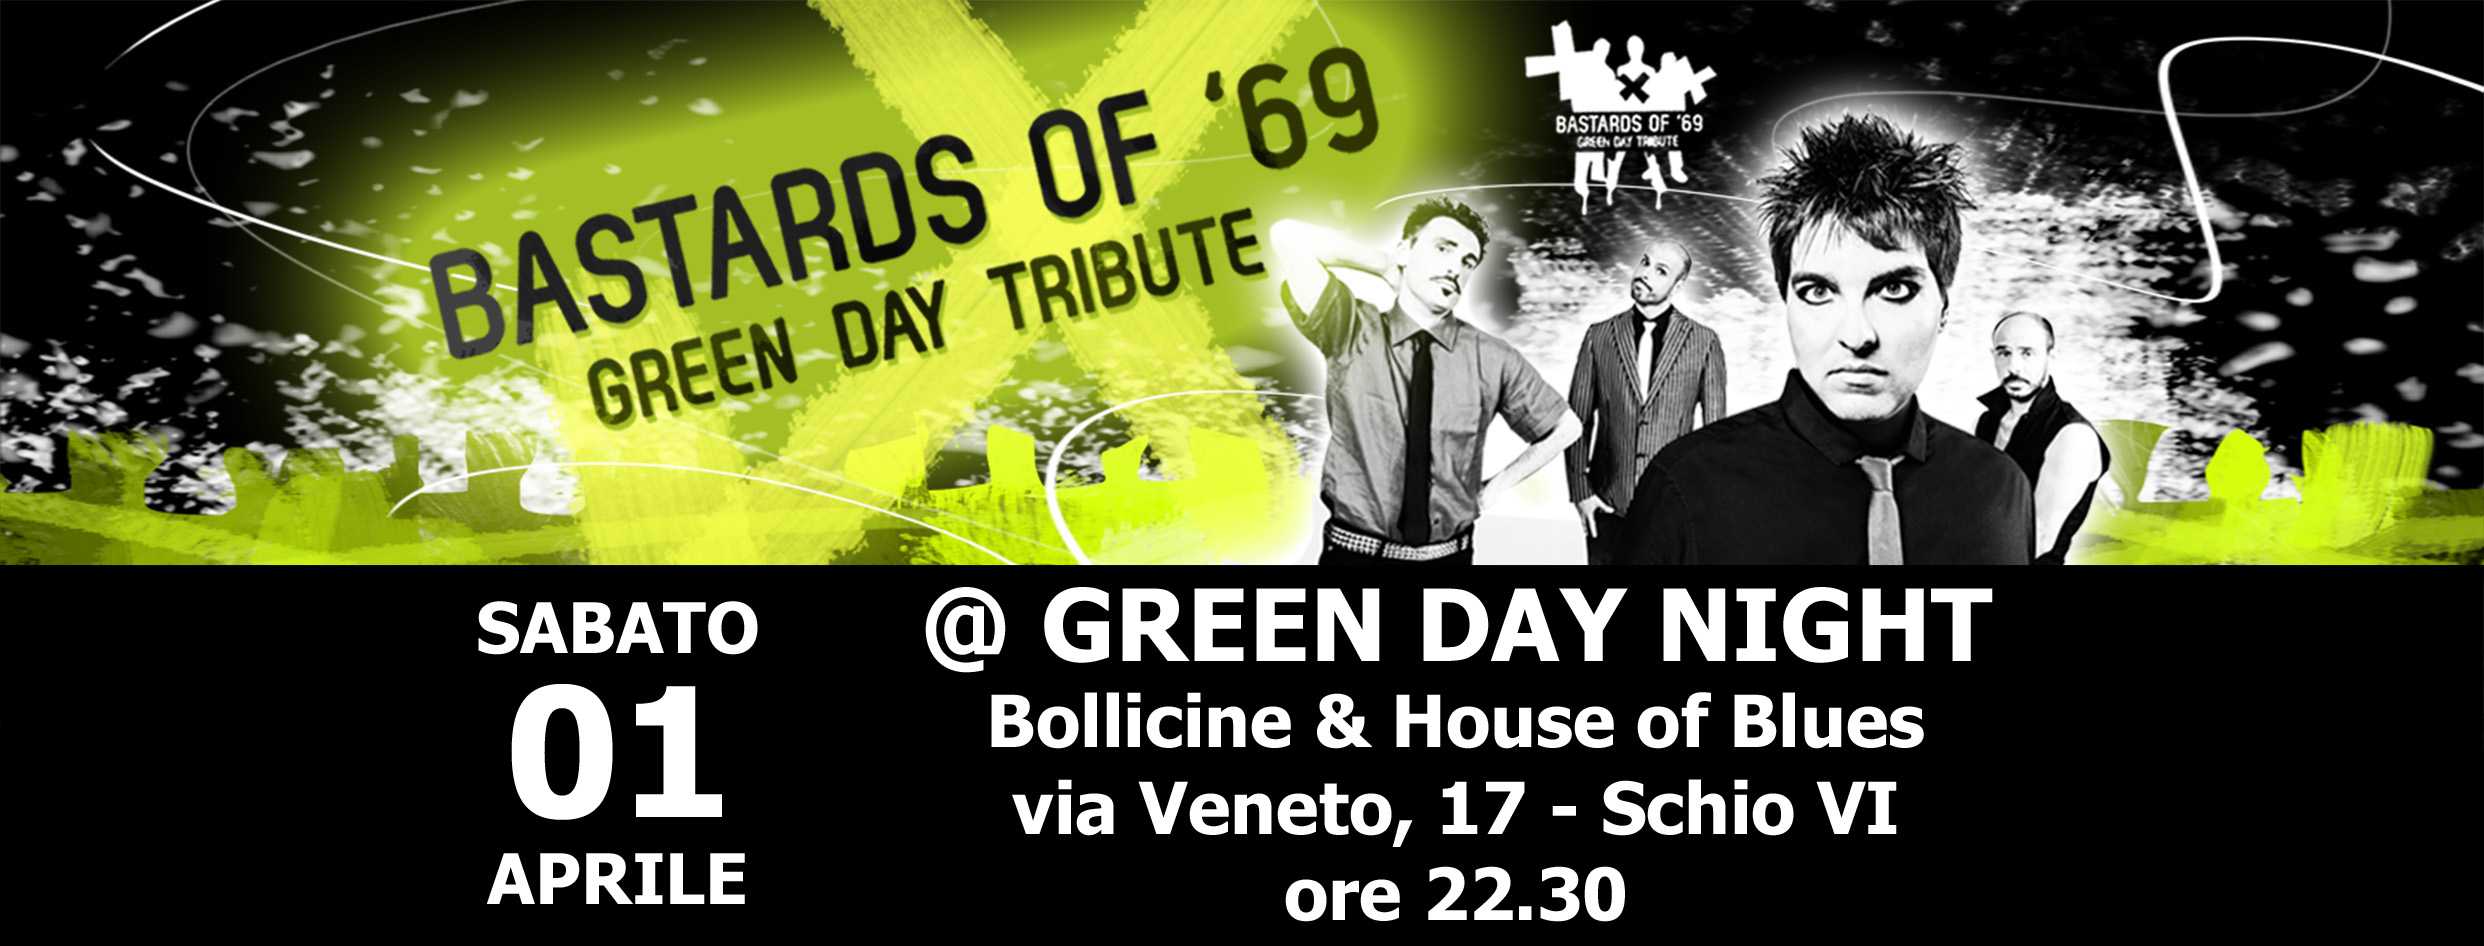 Green Day Night